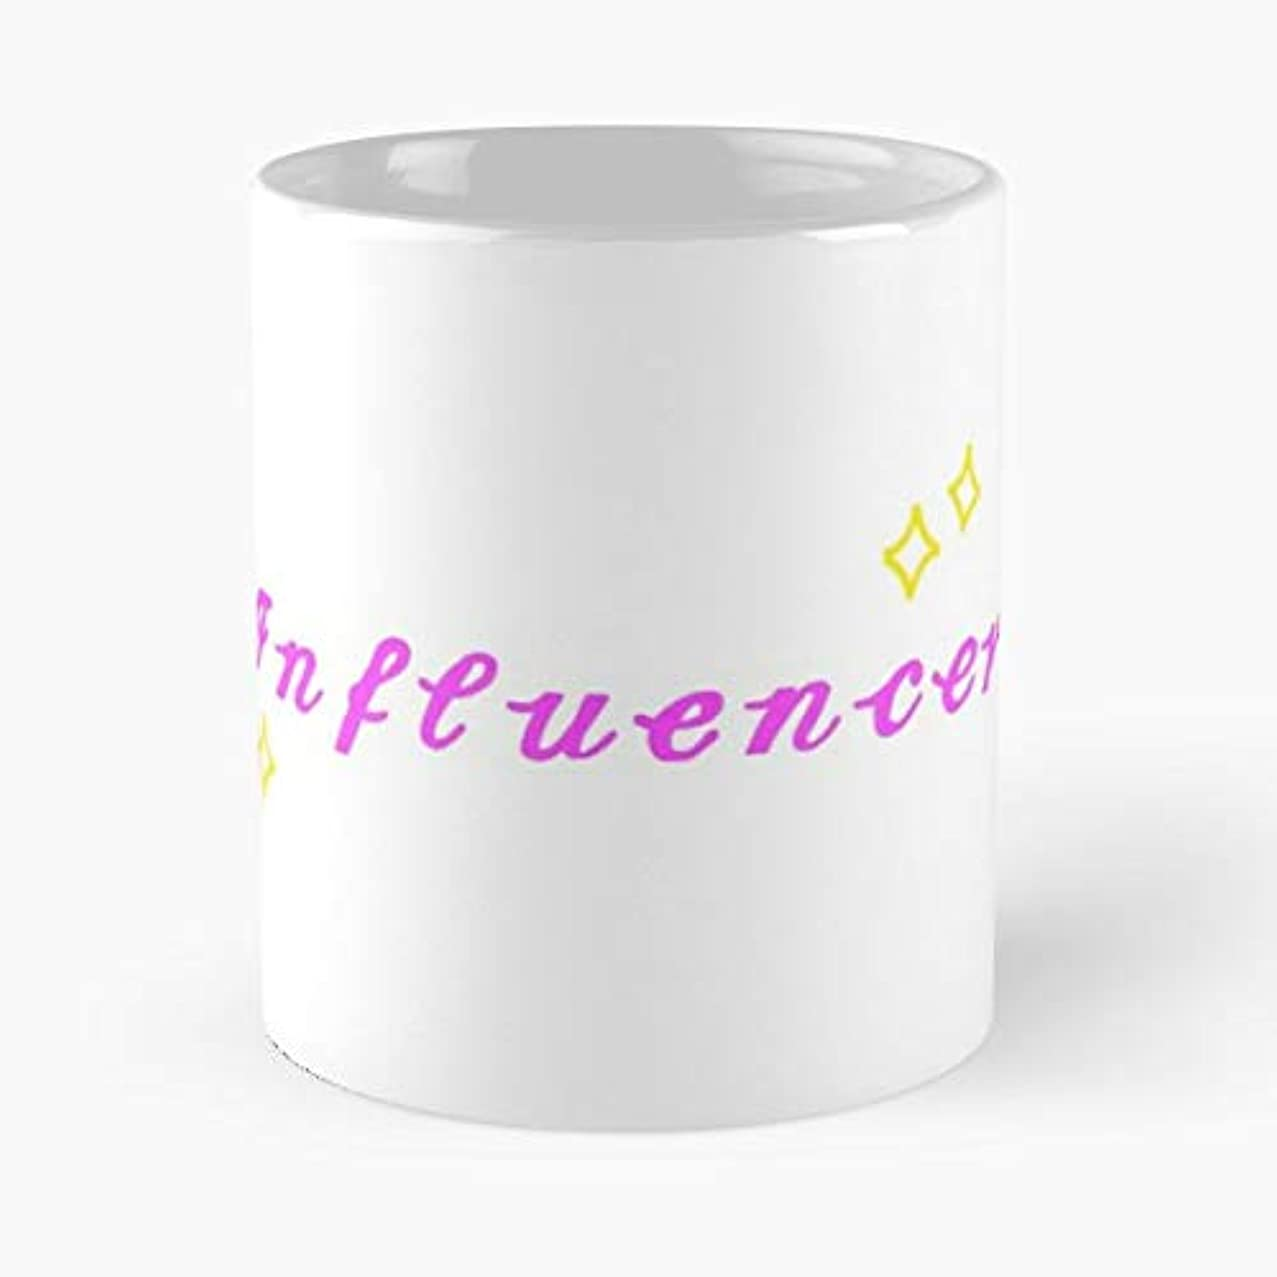 Influencer Ig Baddie Instagram Emma Chamberlain - Coffee Mug Tea Cup Gift 11oz Mugs The Best Gift Holidays.